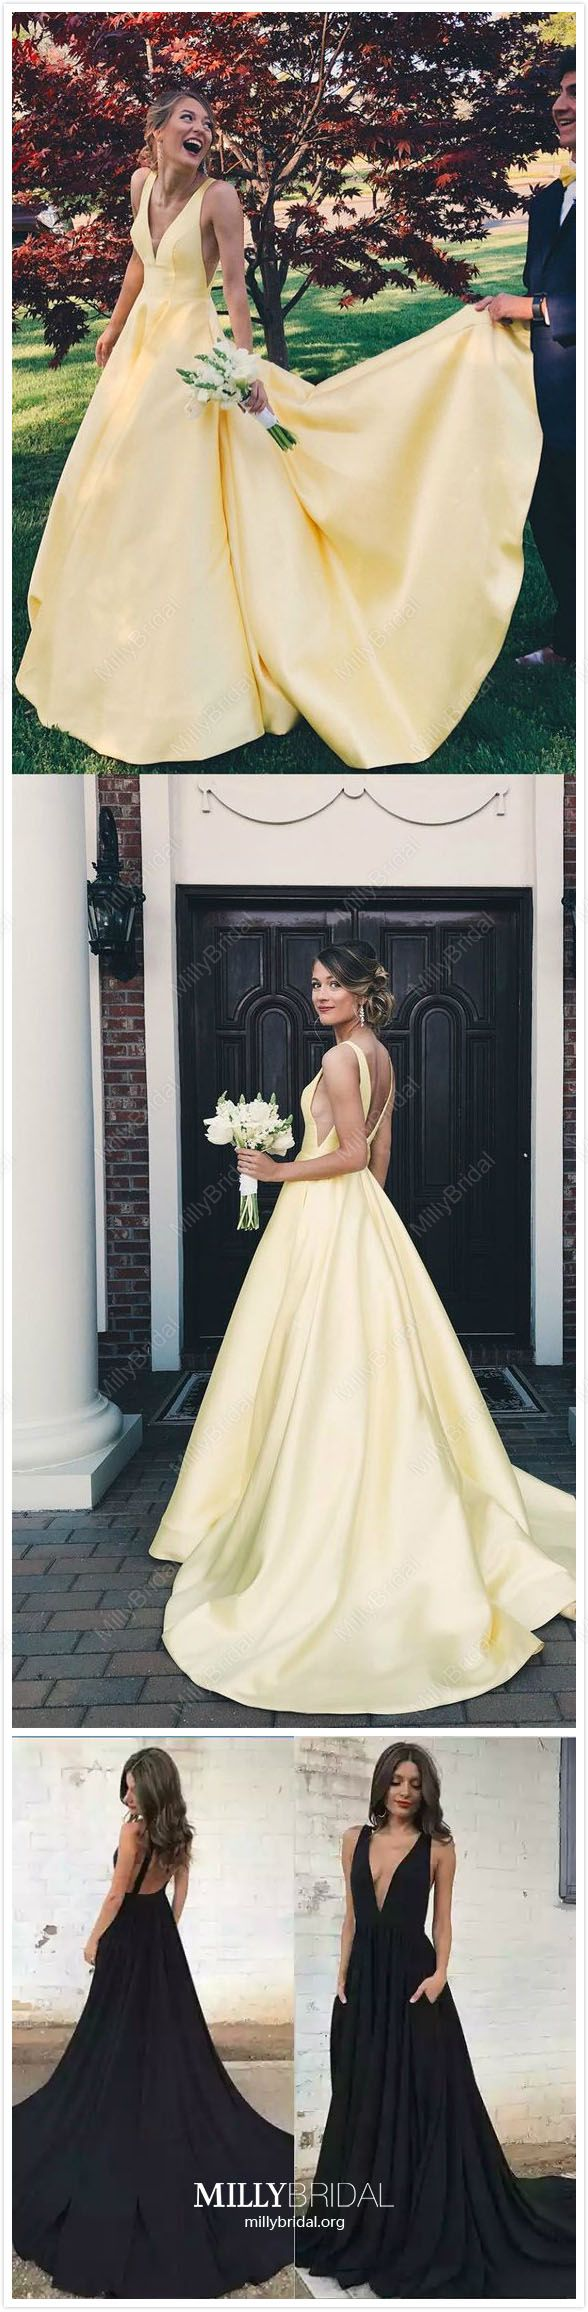 8bbef3408a77 Long Prom Dresses Yellow 2019, Princess Prom Dresses With Pockets, Cheap Prom  Dresses Satin, Beautiful Prom Dresses V Neck